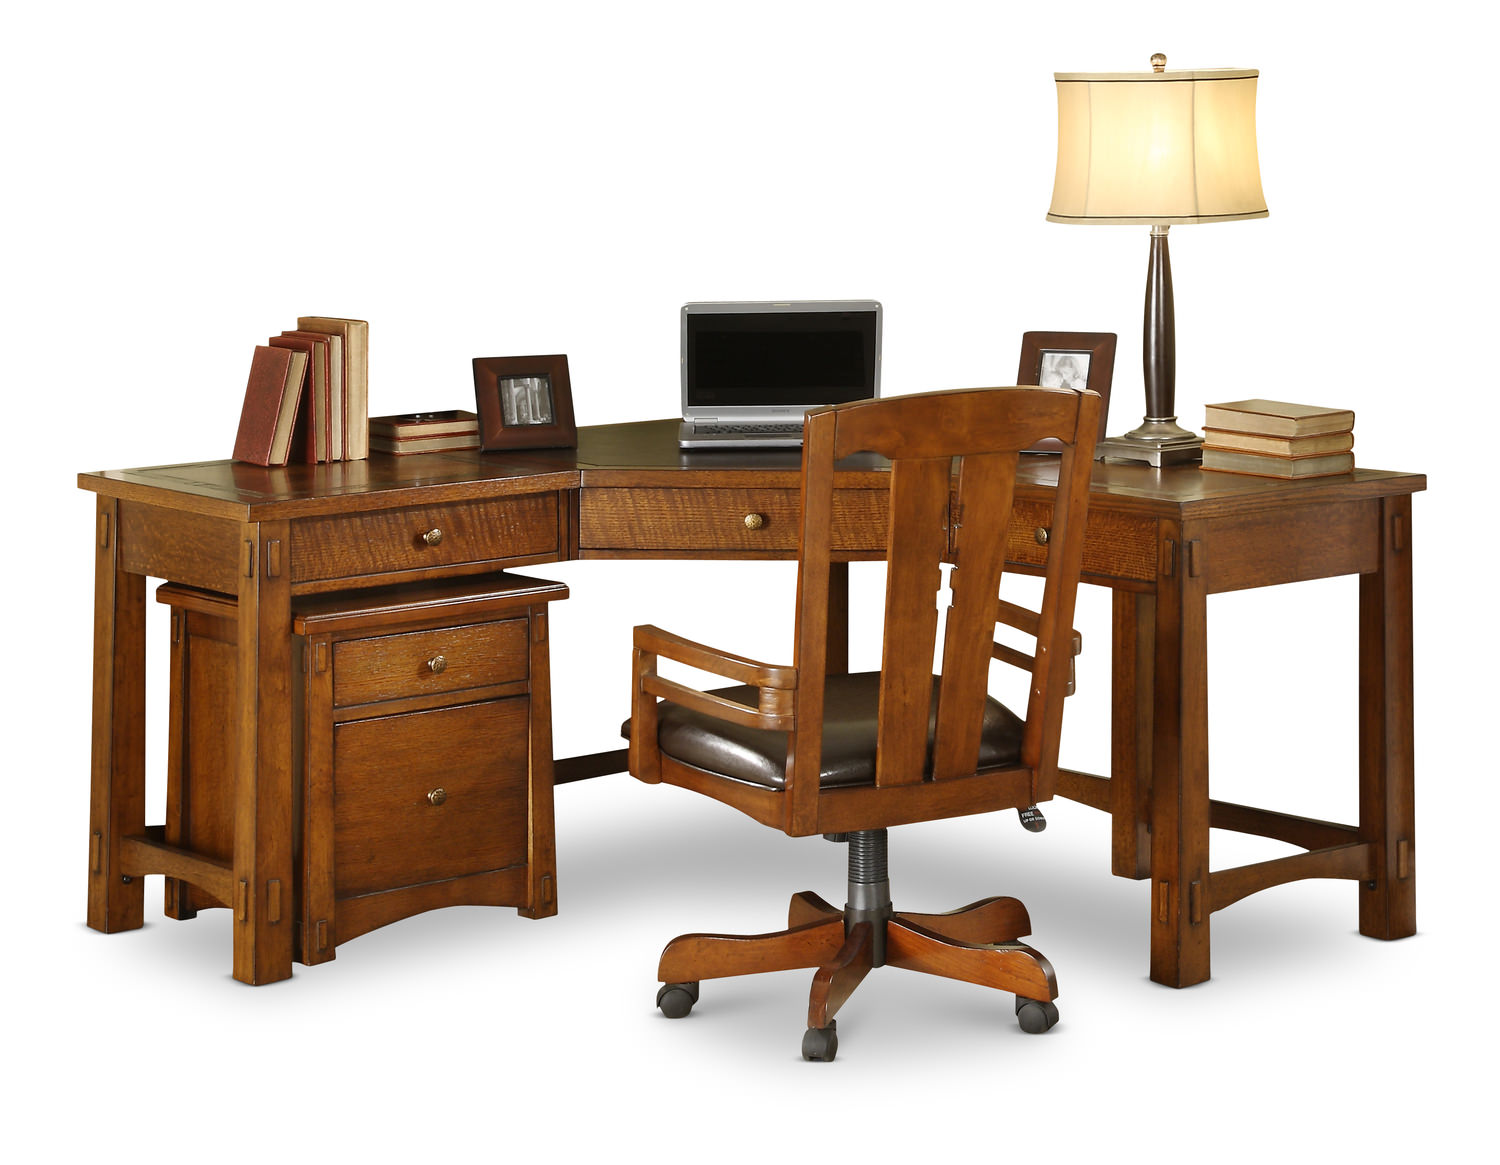 craftsman home corner desk by riverside hom furniture. Black Bedroom Furniture Sets. Home Design Ideas